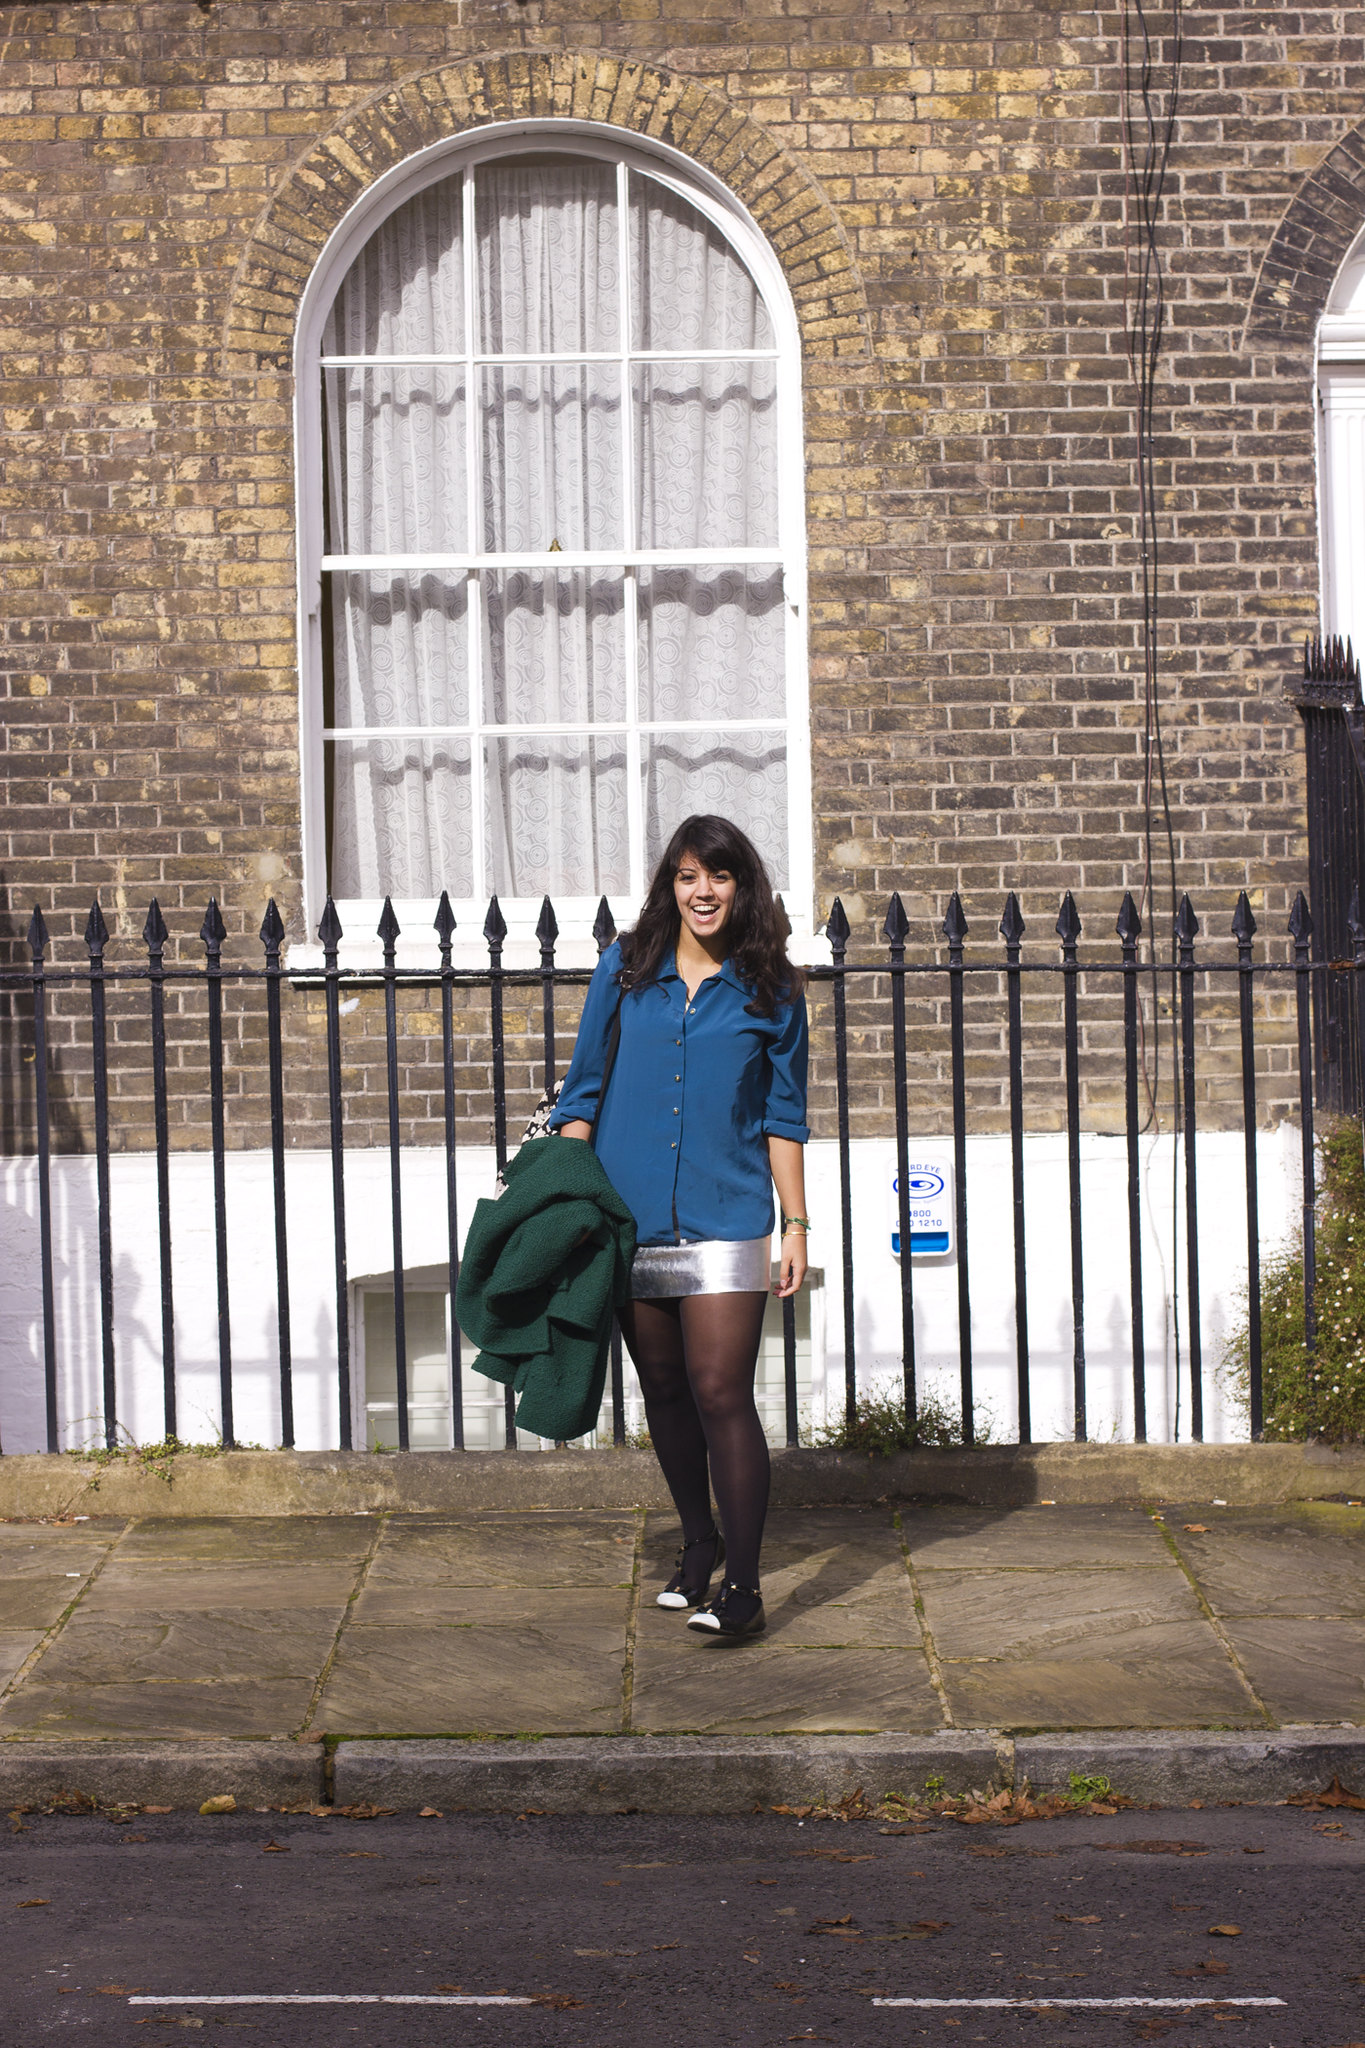 Silver skirt turquoise teal shirt green coat kings cross london bloggers bas ellie let's see laila tapeparade